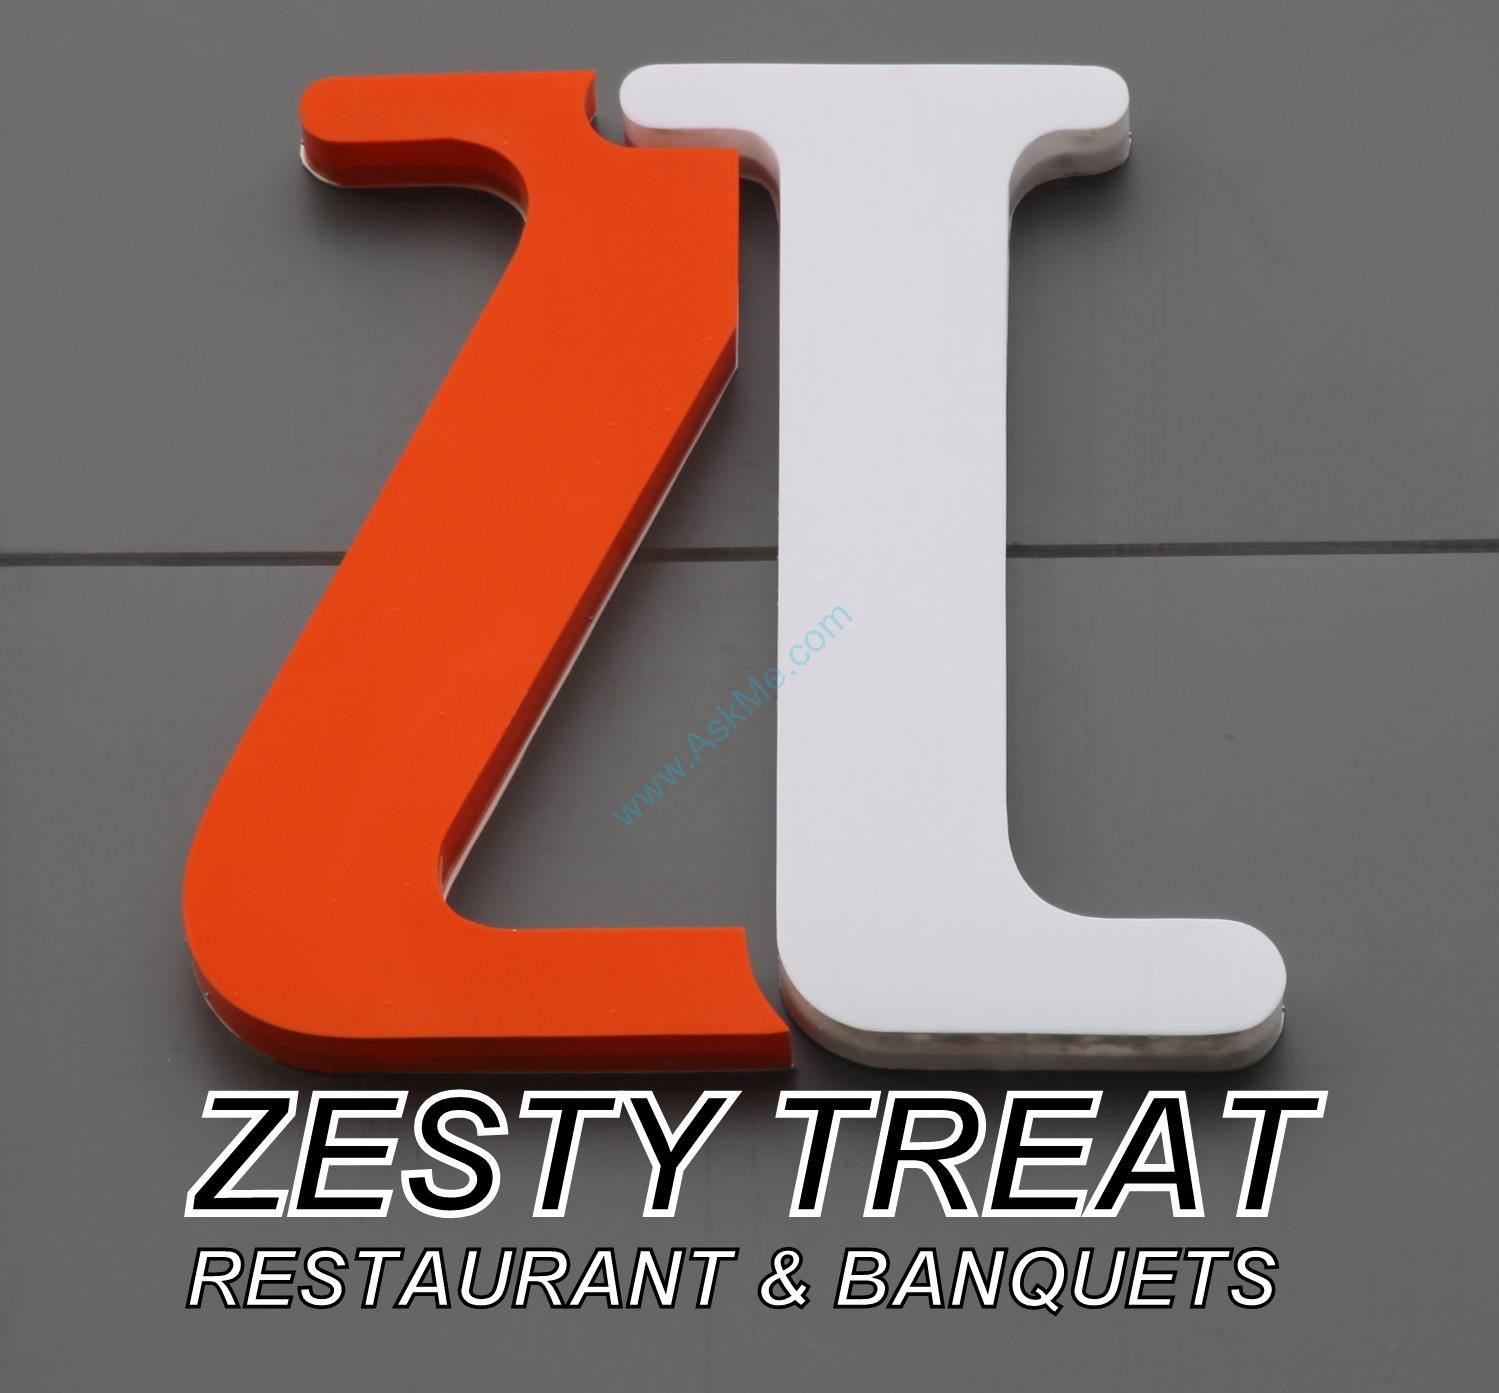 Zesty Treat Restaurant and Banquets